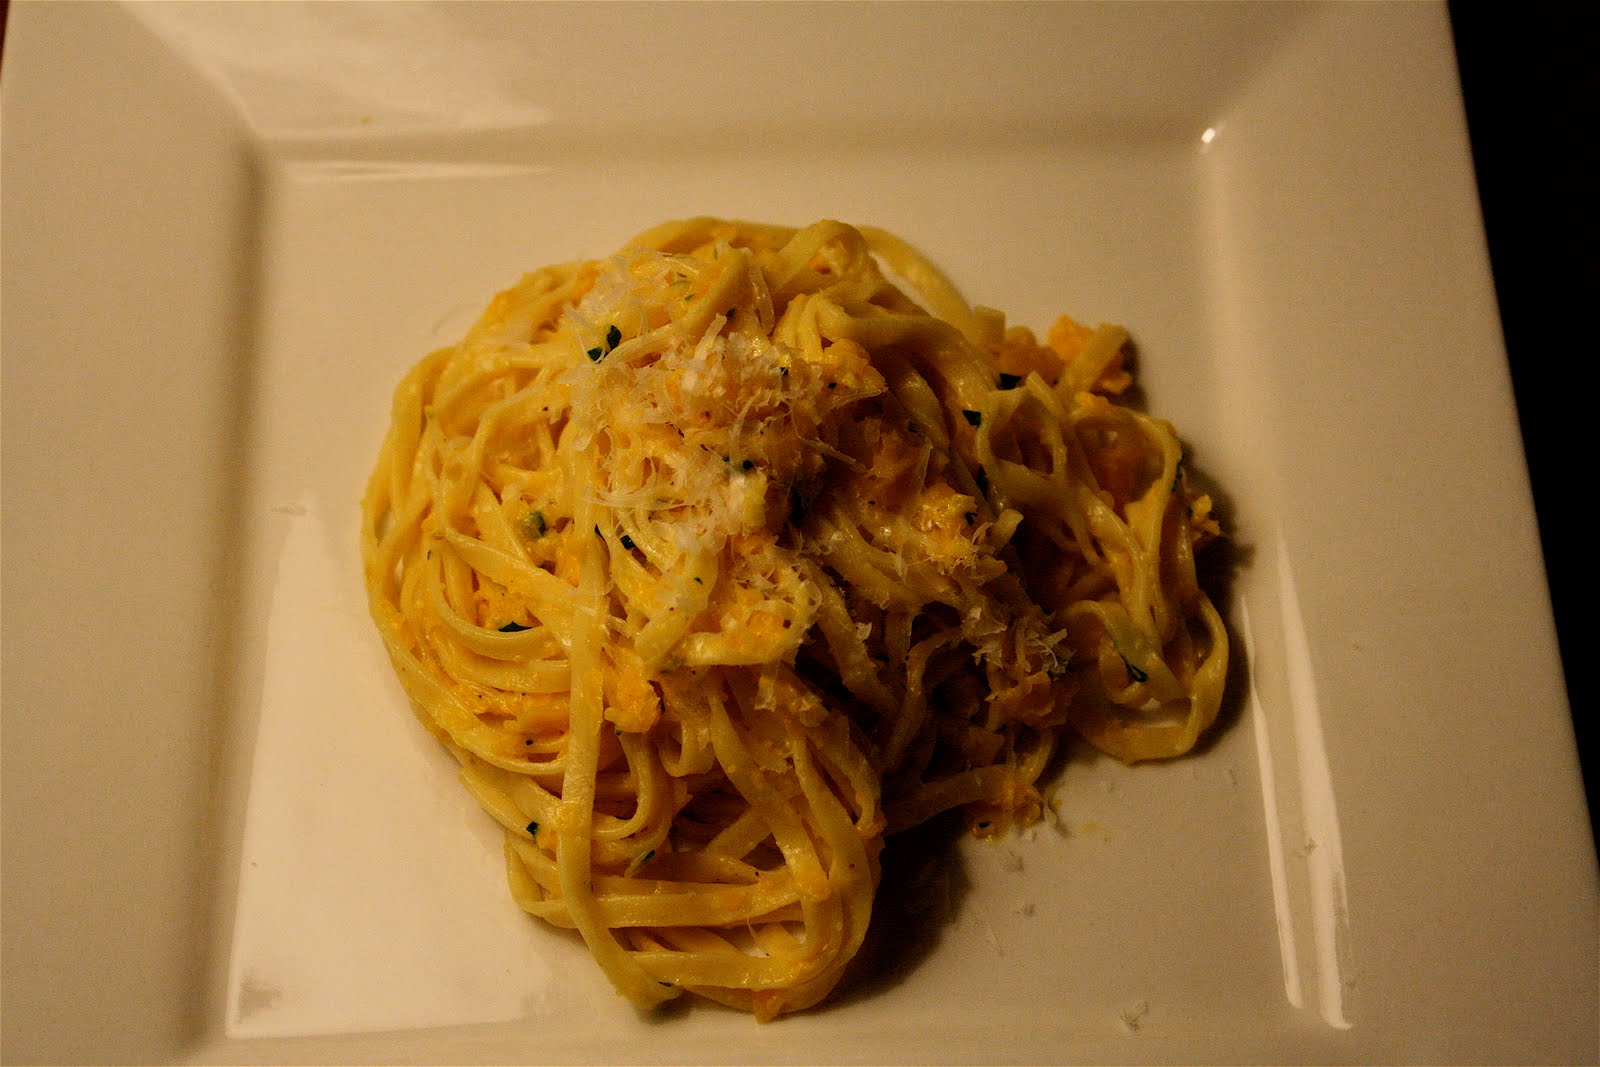 Linguine &quot;Cacio e Pepe&quot; with Shredded Squash